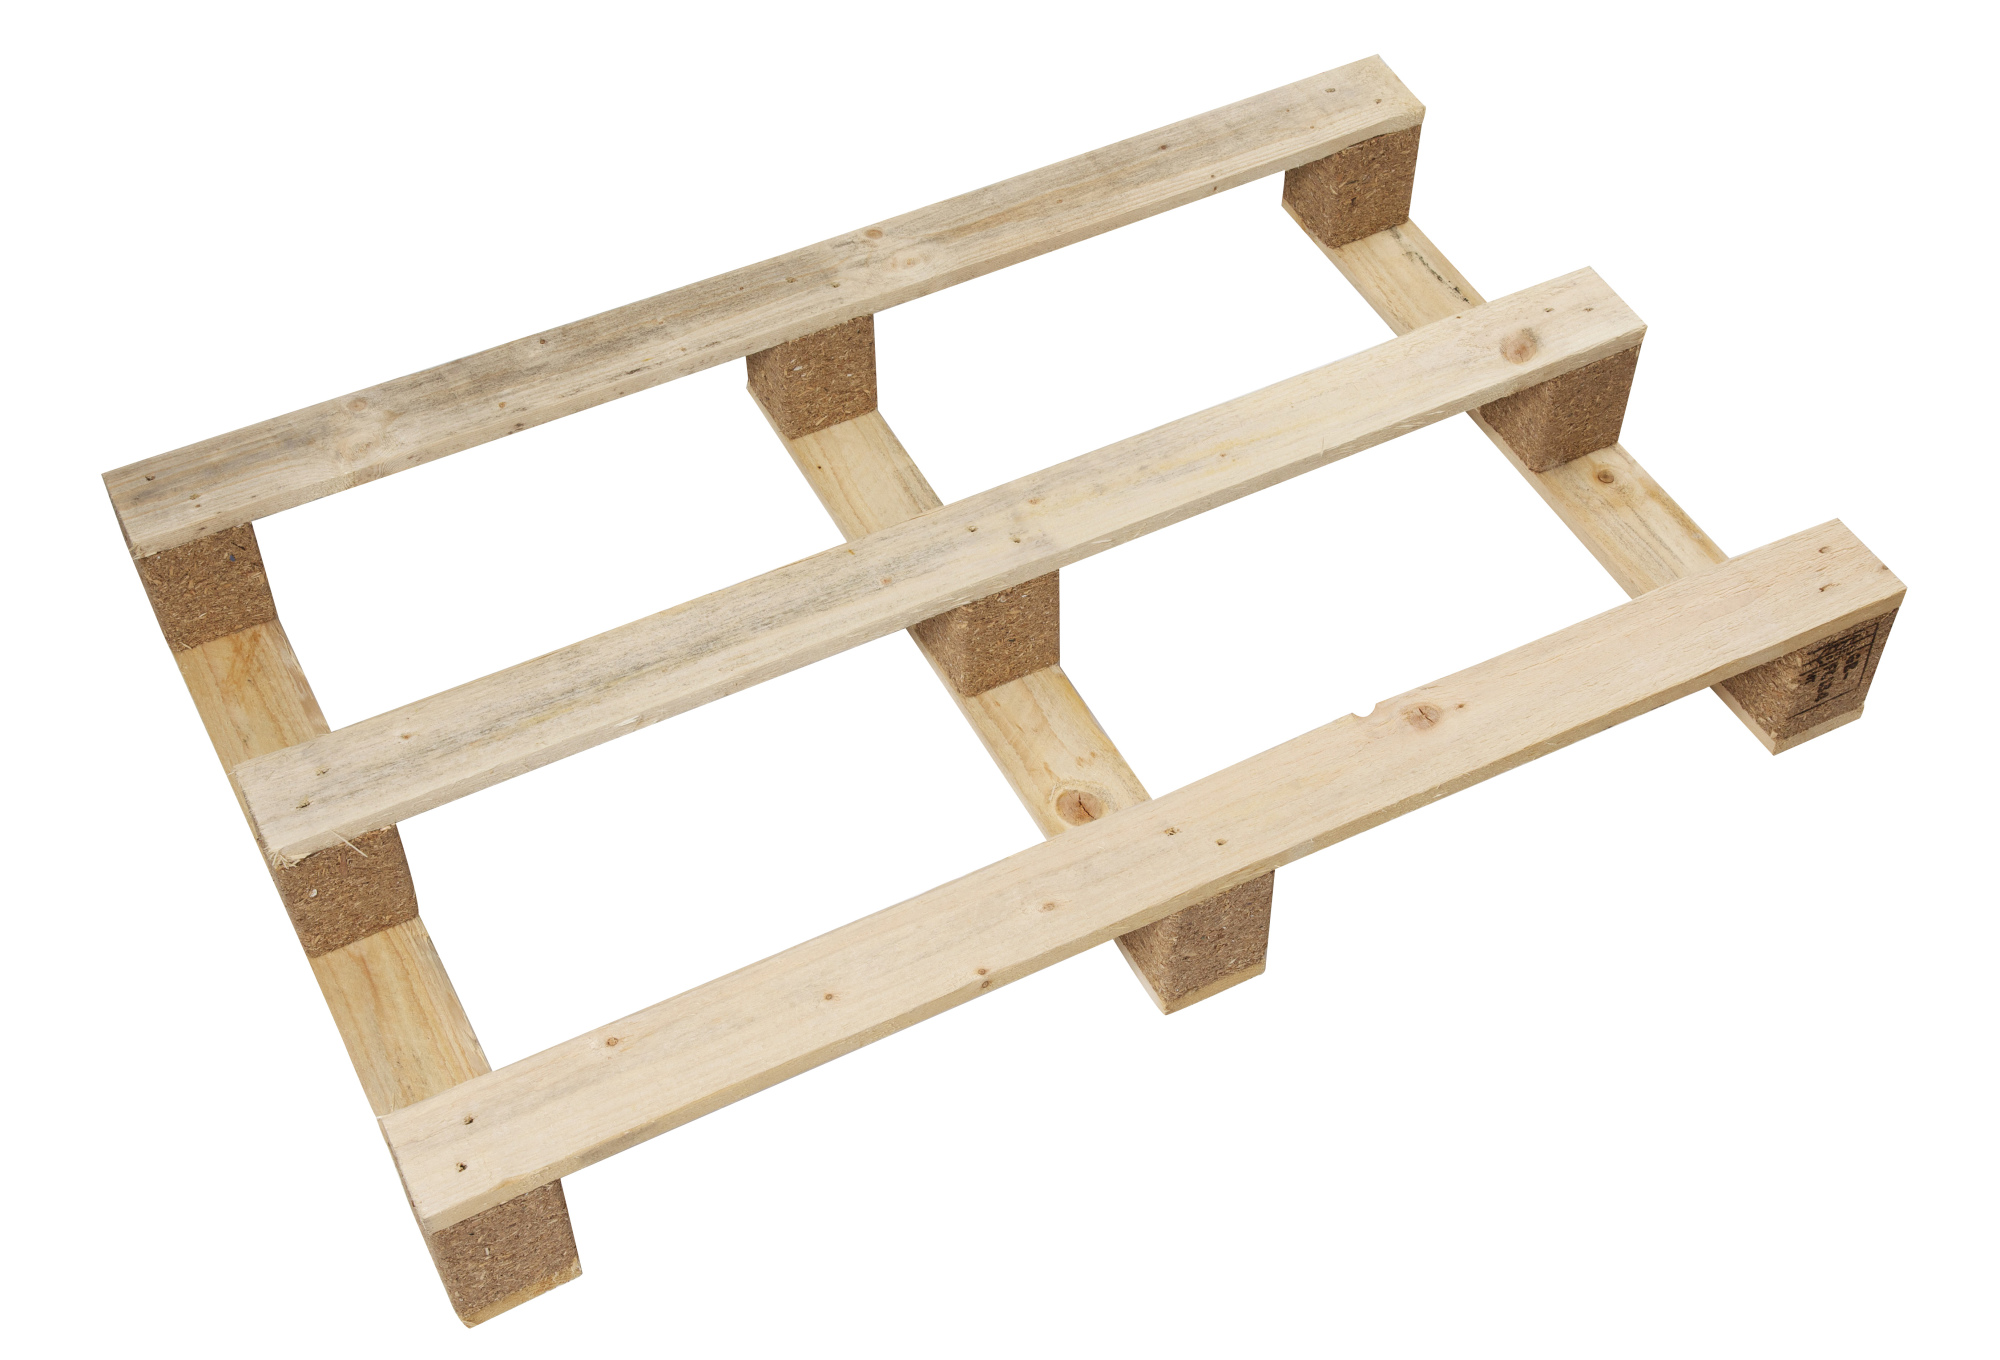 1200 x 1000mm HT Light Duty Pallet with FPB + 90mm Blocks